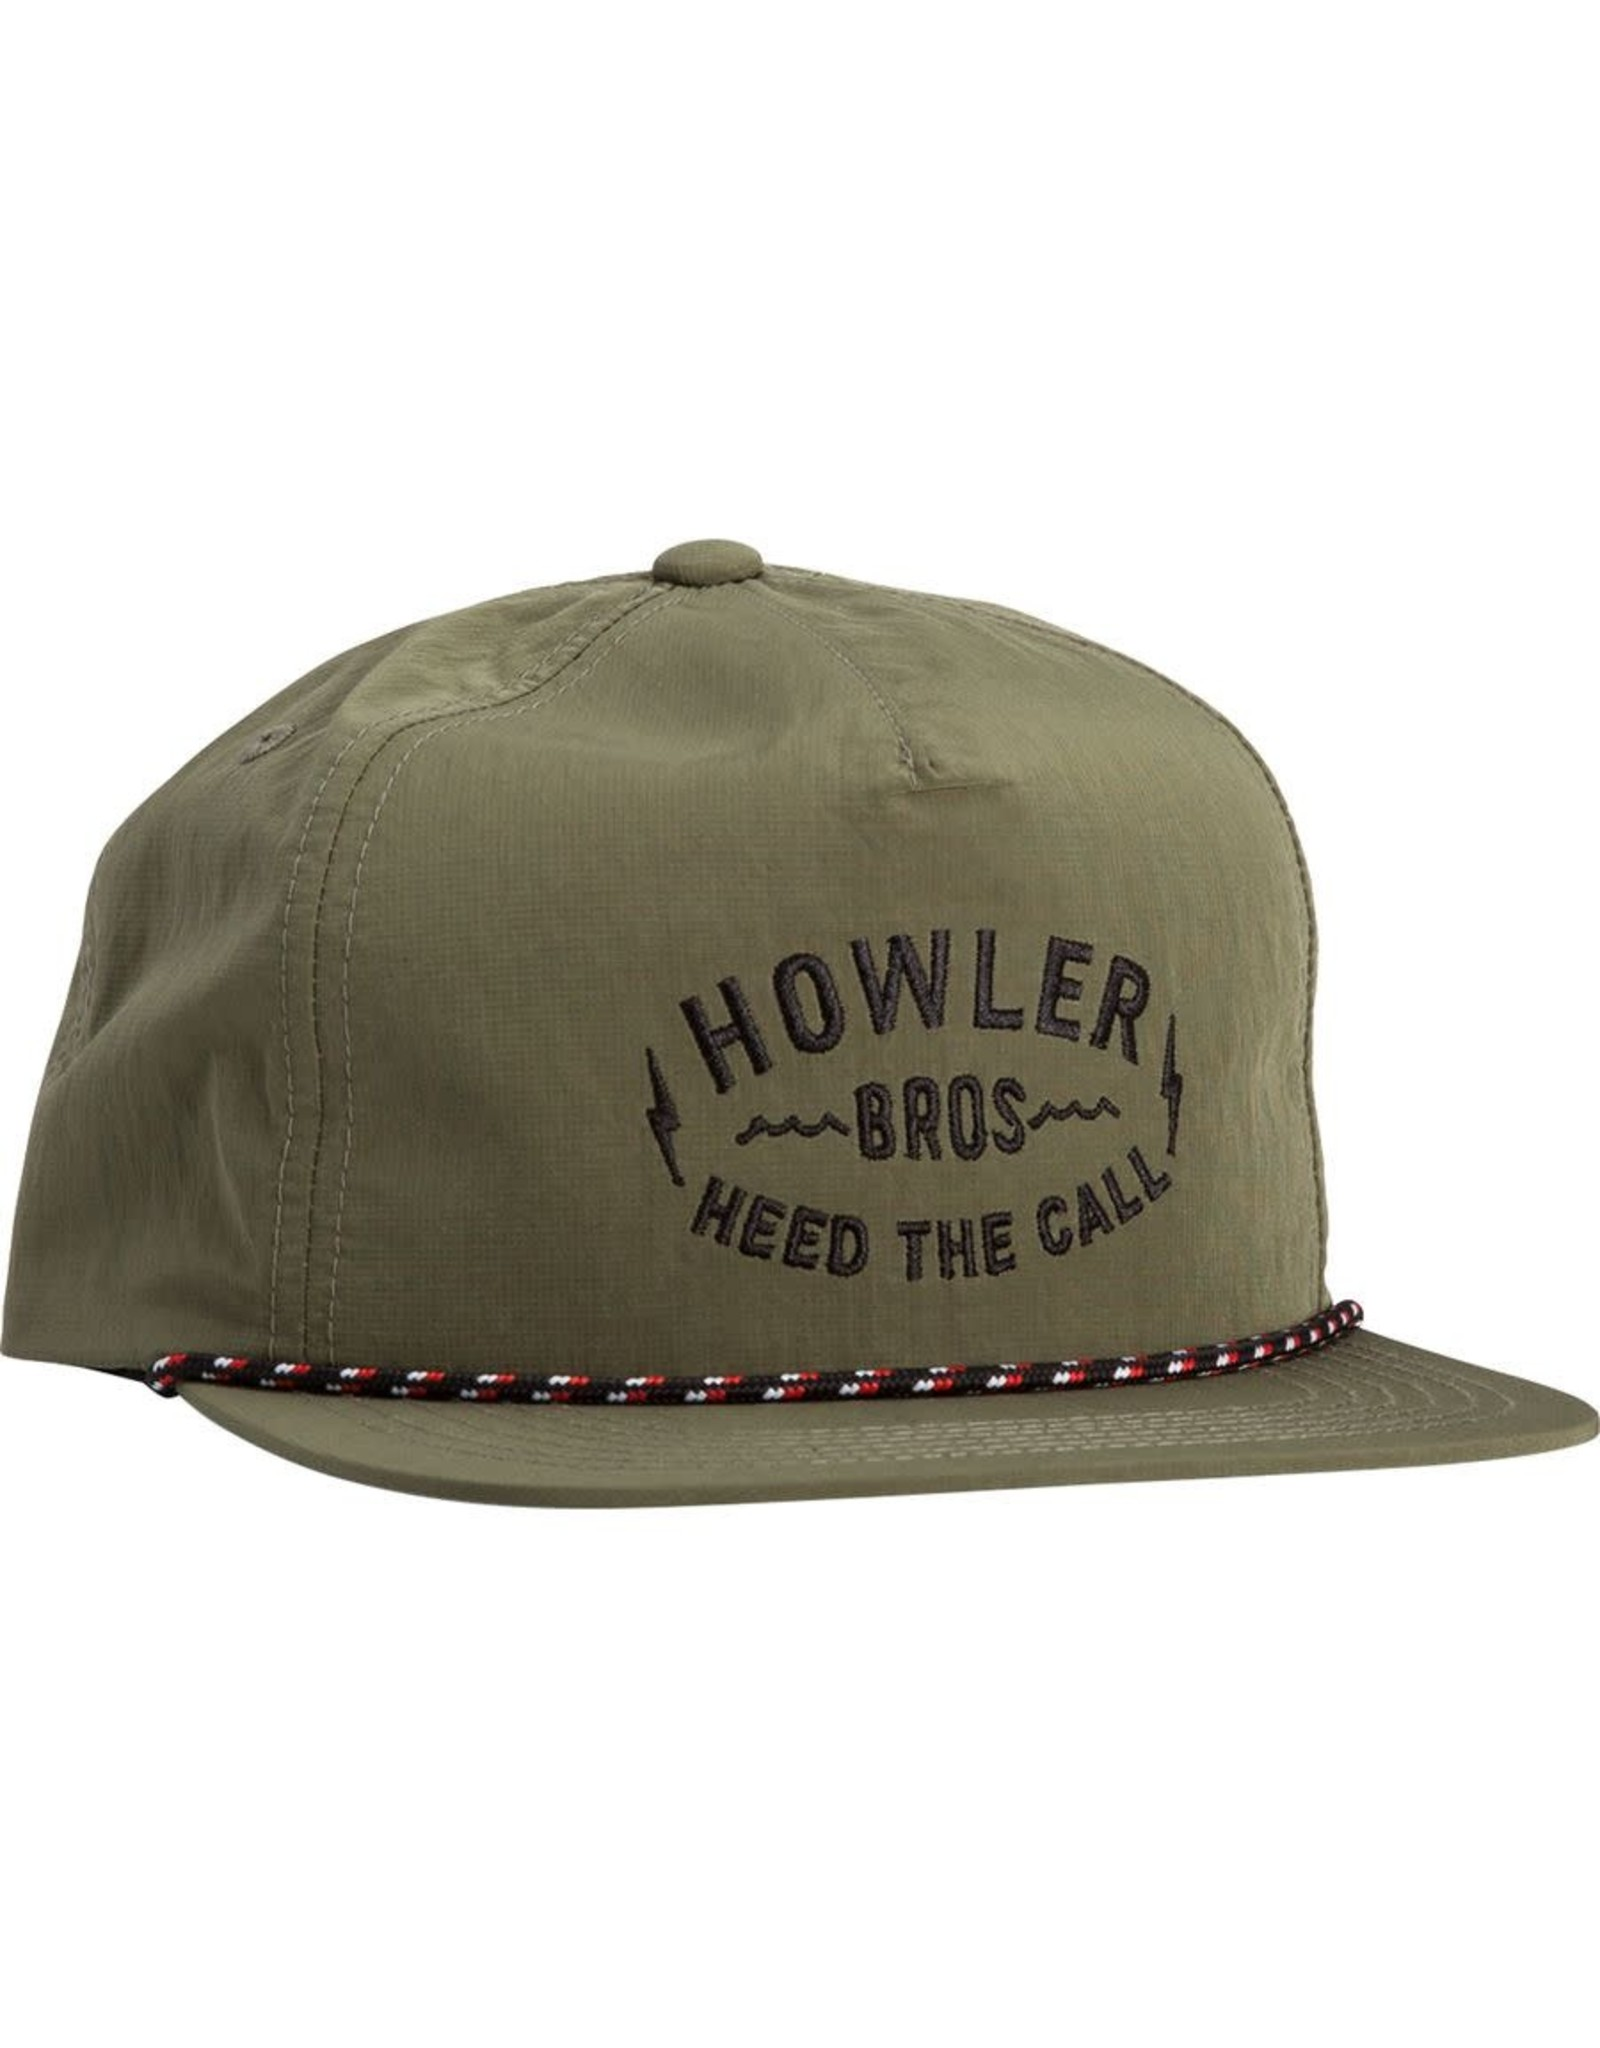 Howler Bros HB Painted Howler Snapback Cap- Olive Nylon